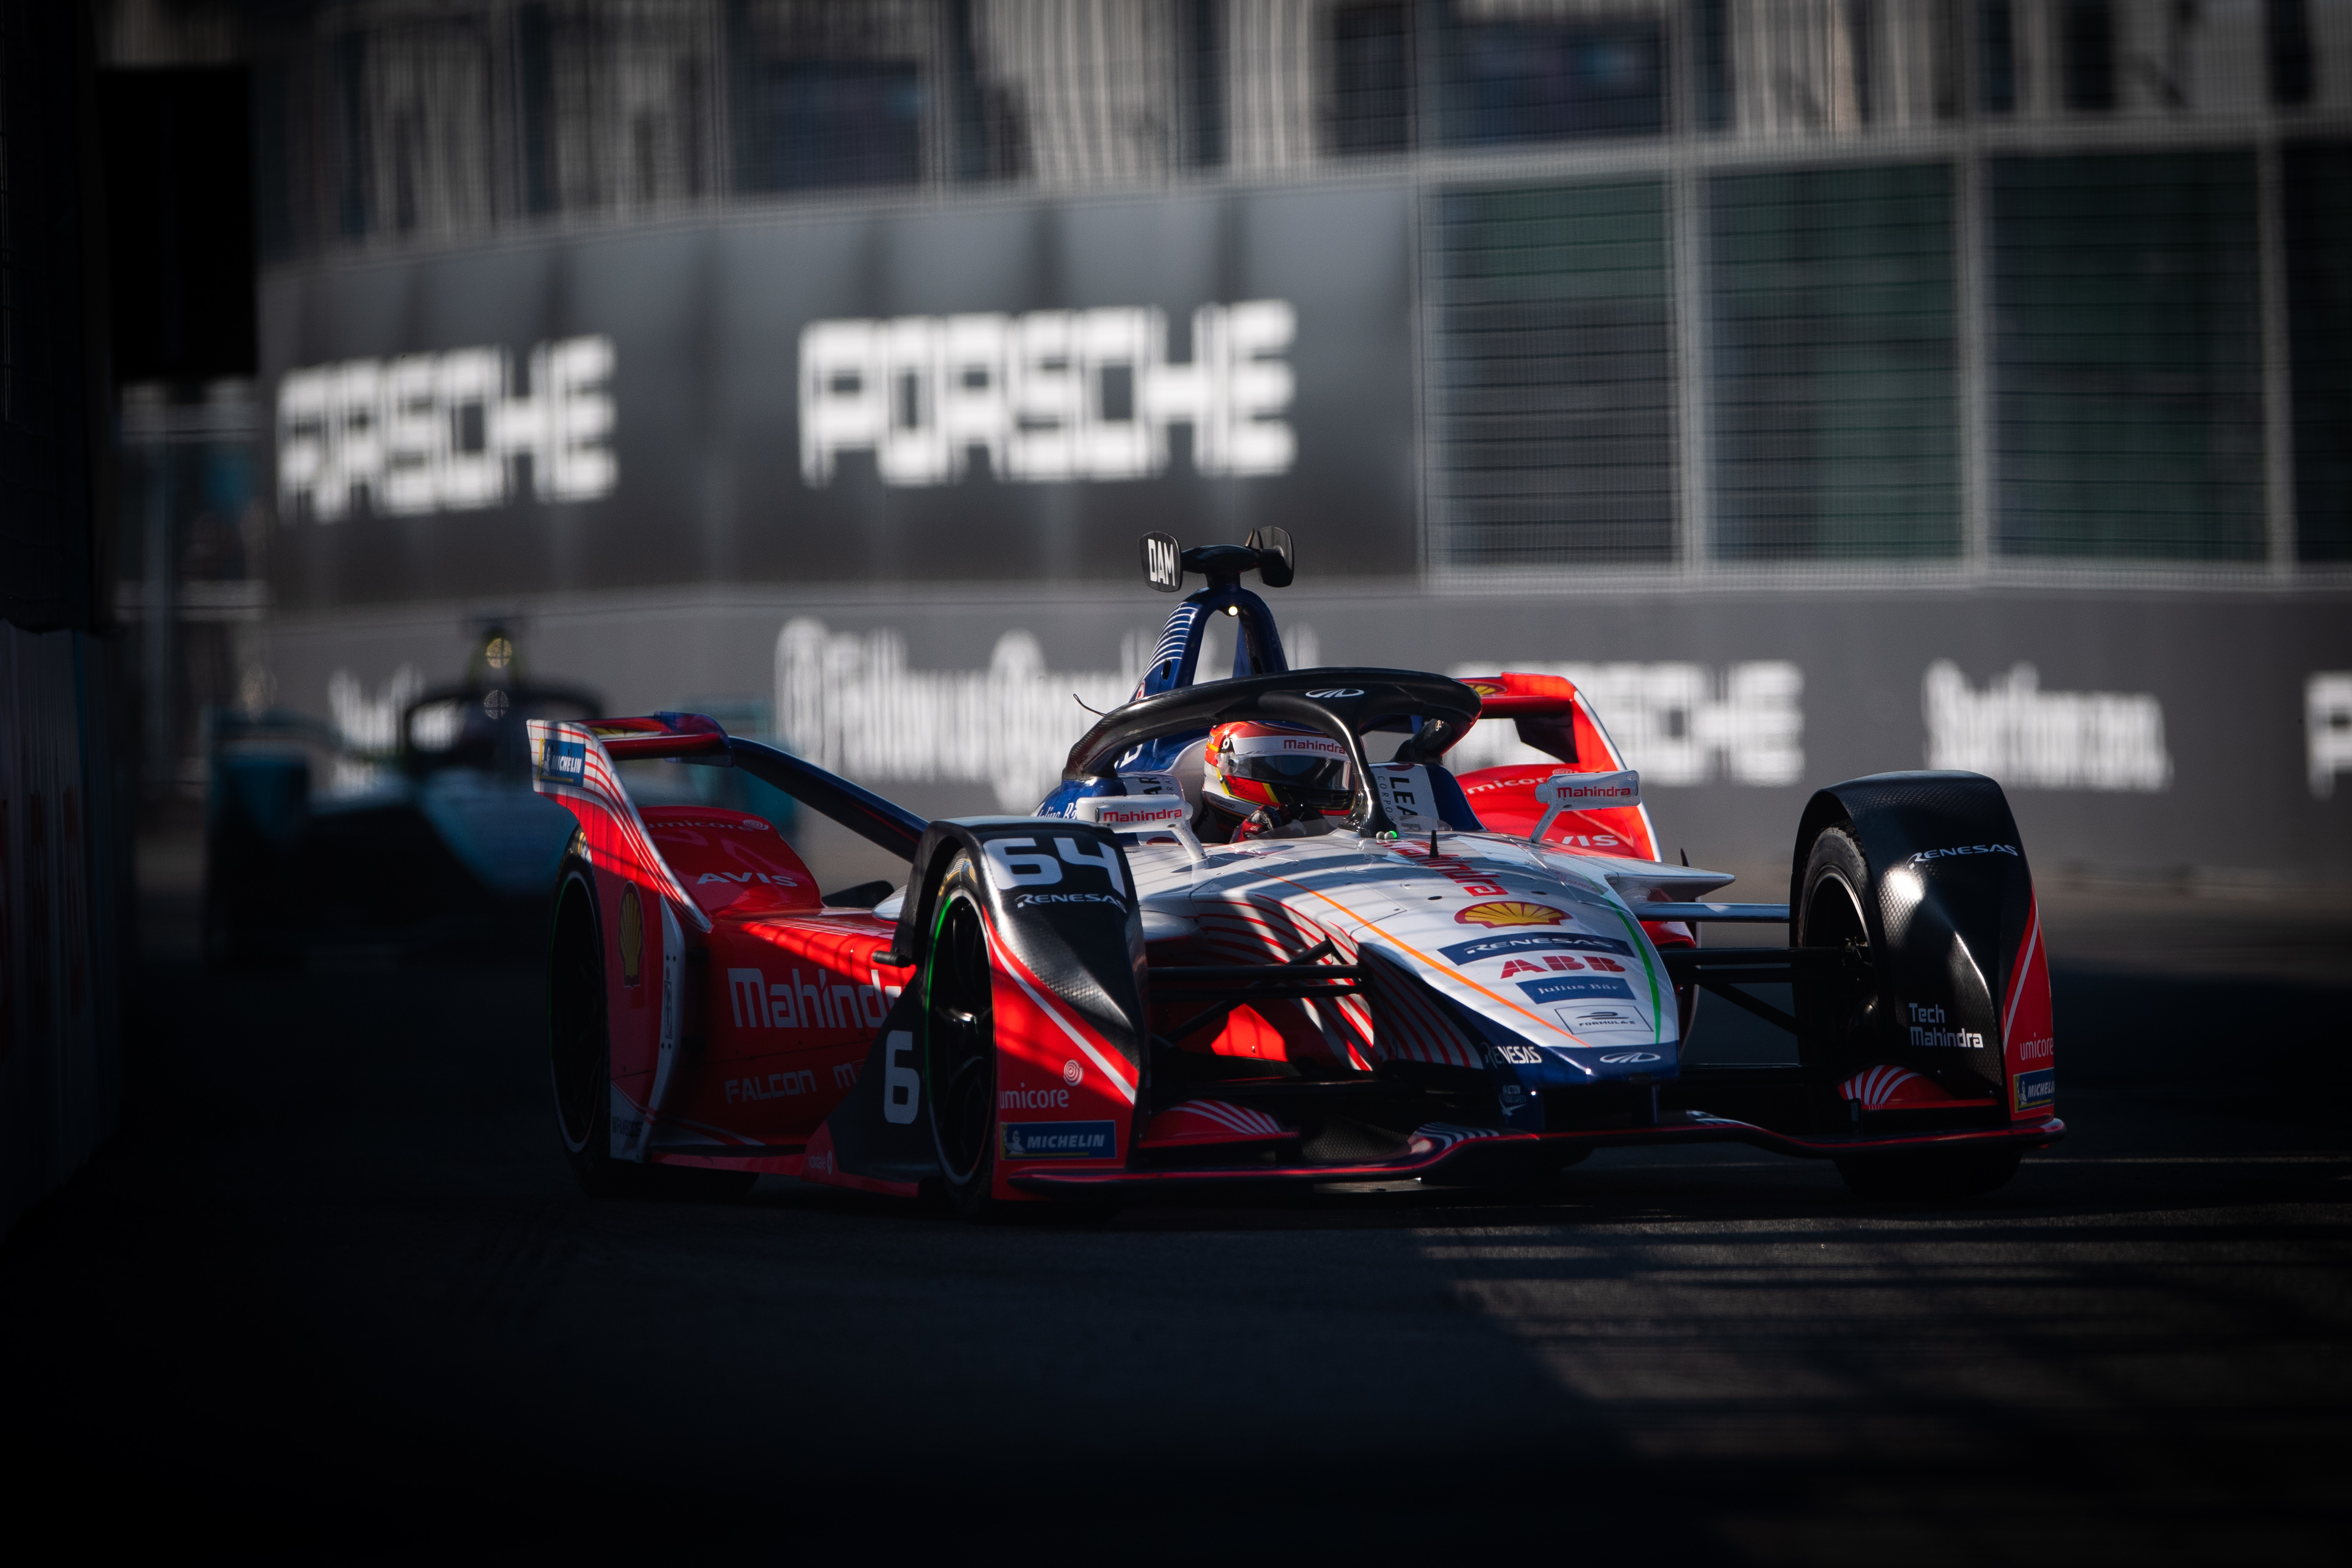 Mahindra Racing: Yet Another Impressive Rookie - Just Electric